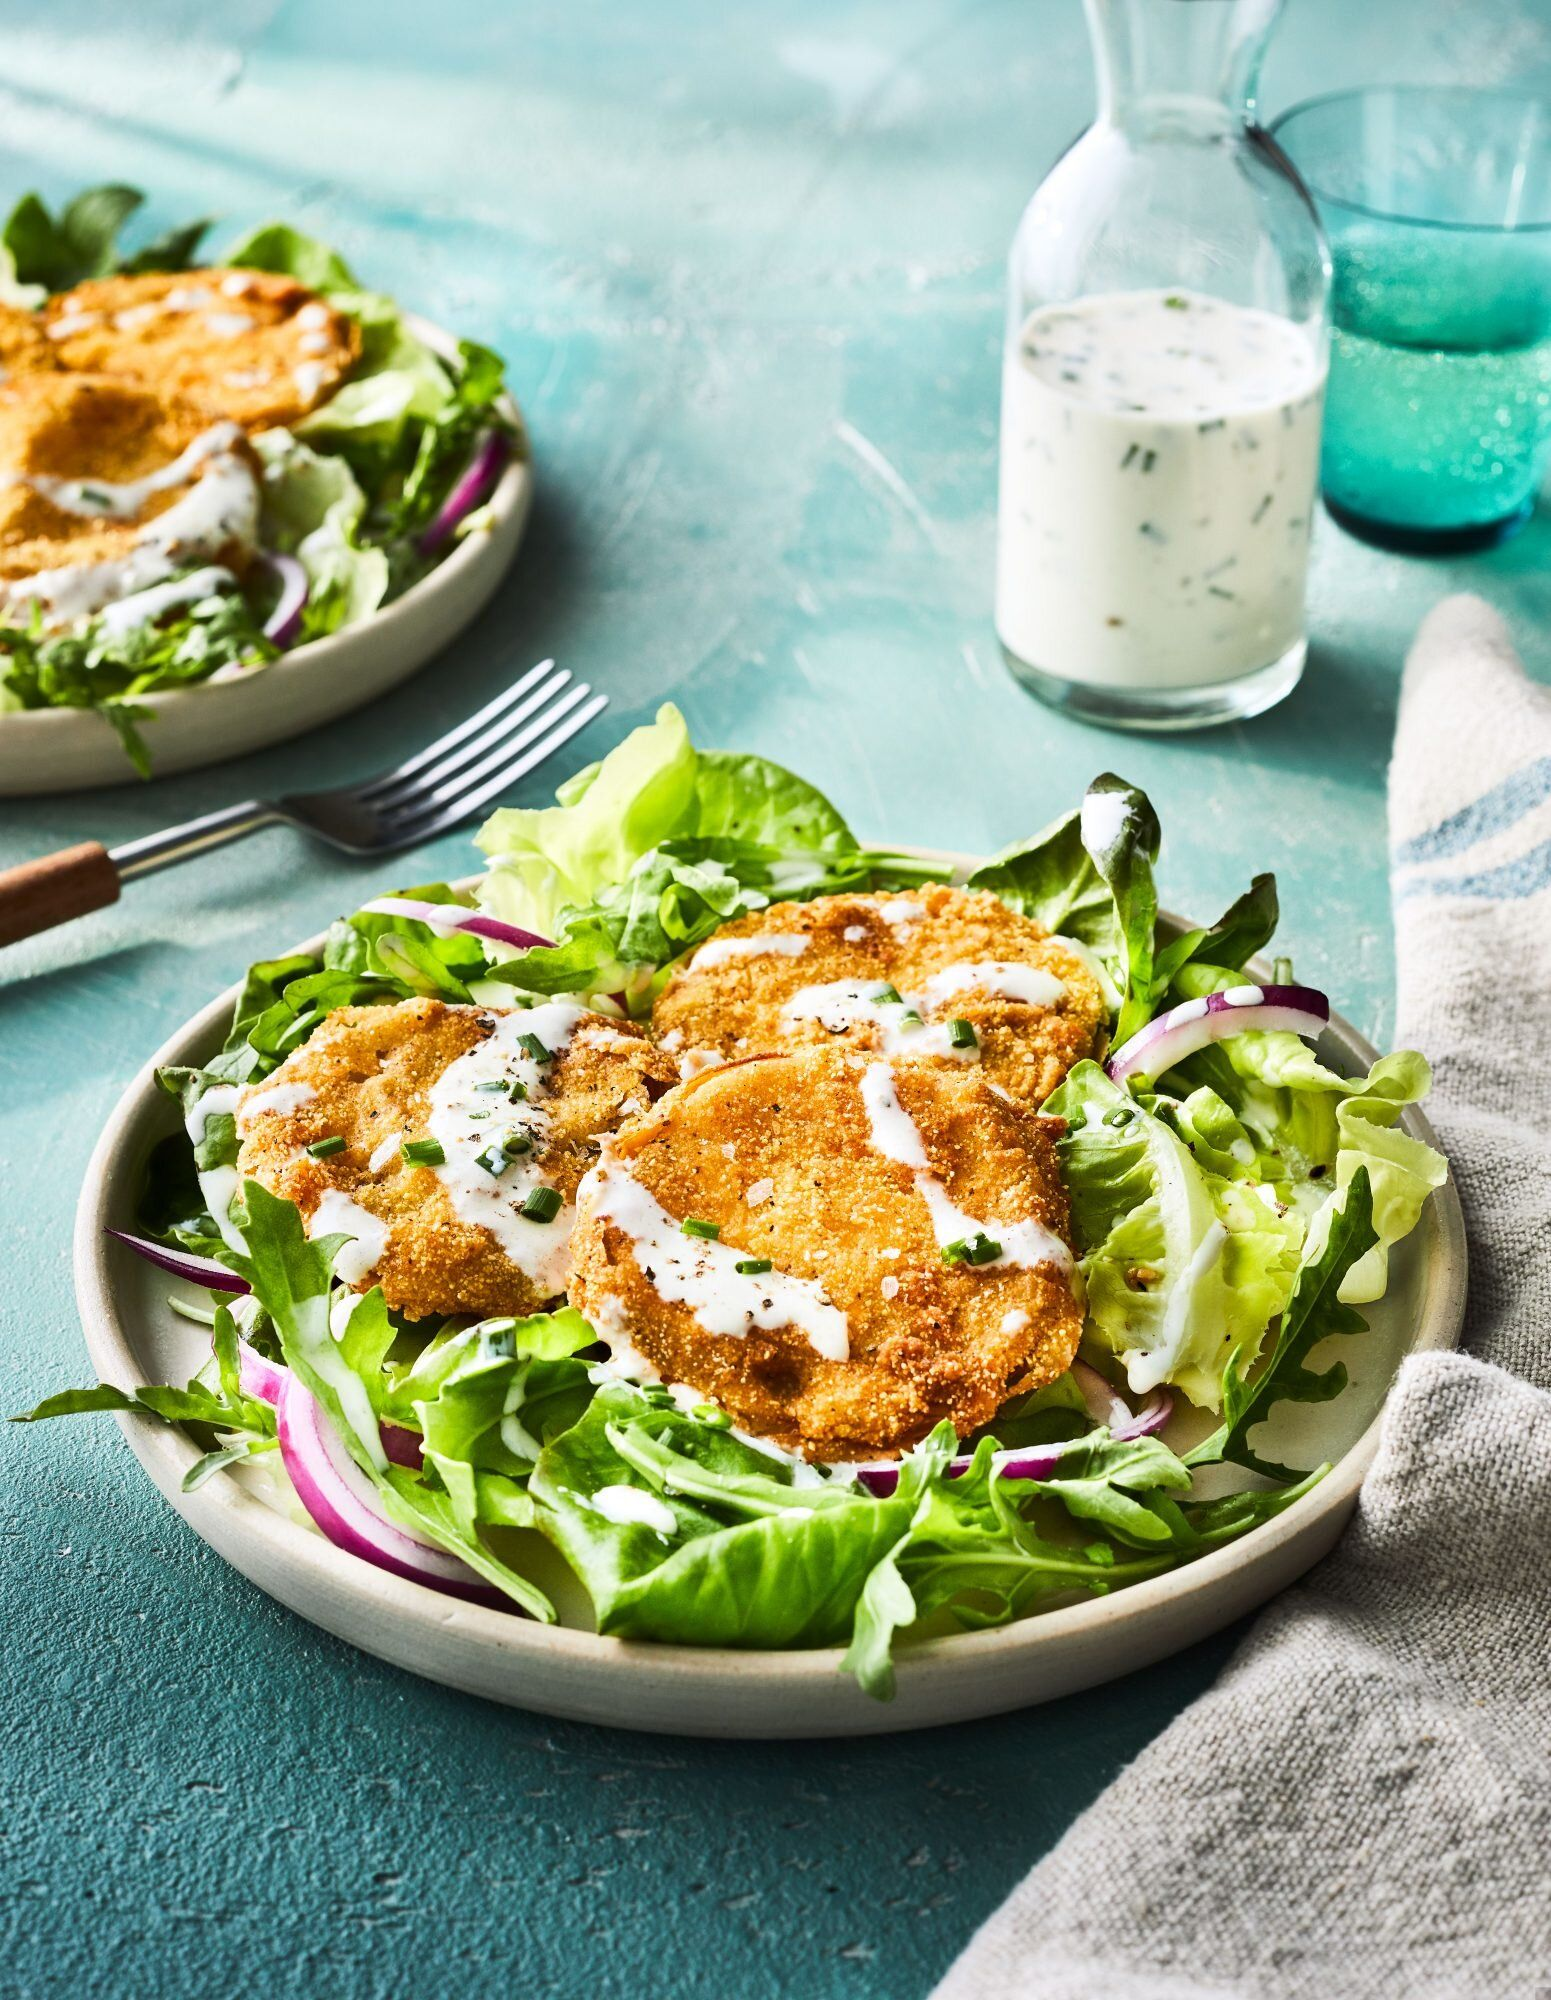 Fried Green Tomato Salad With Buttermilk Dressing Recipe In 2020 Tomato Salad Green Tomatoes Crunchy Greens